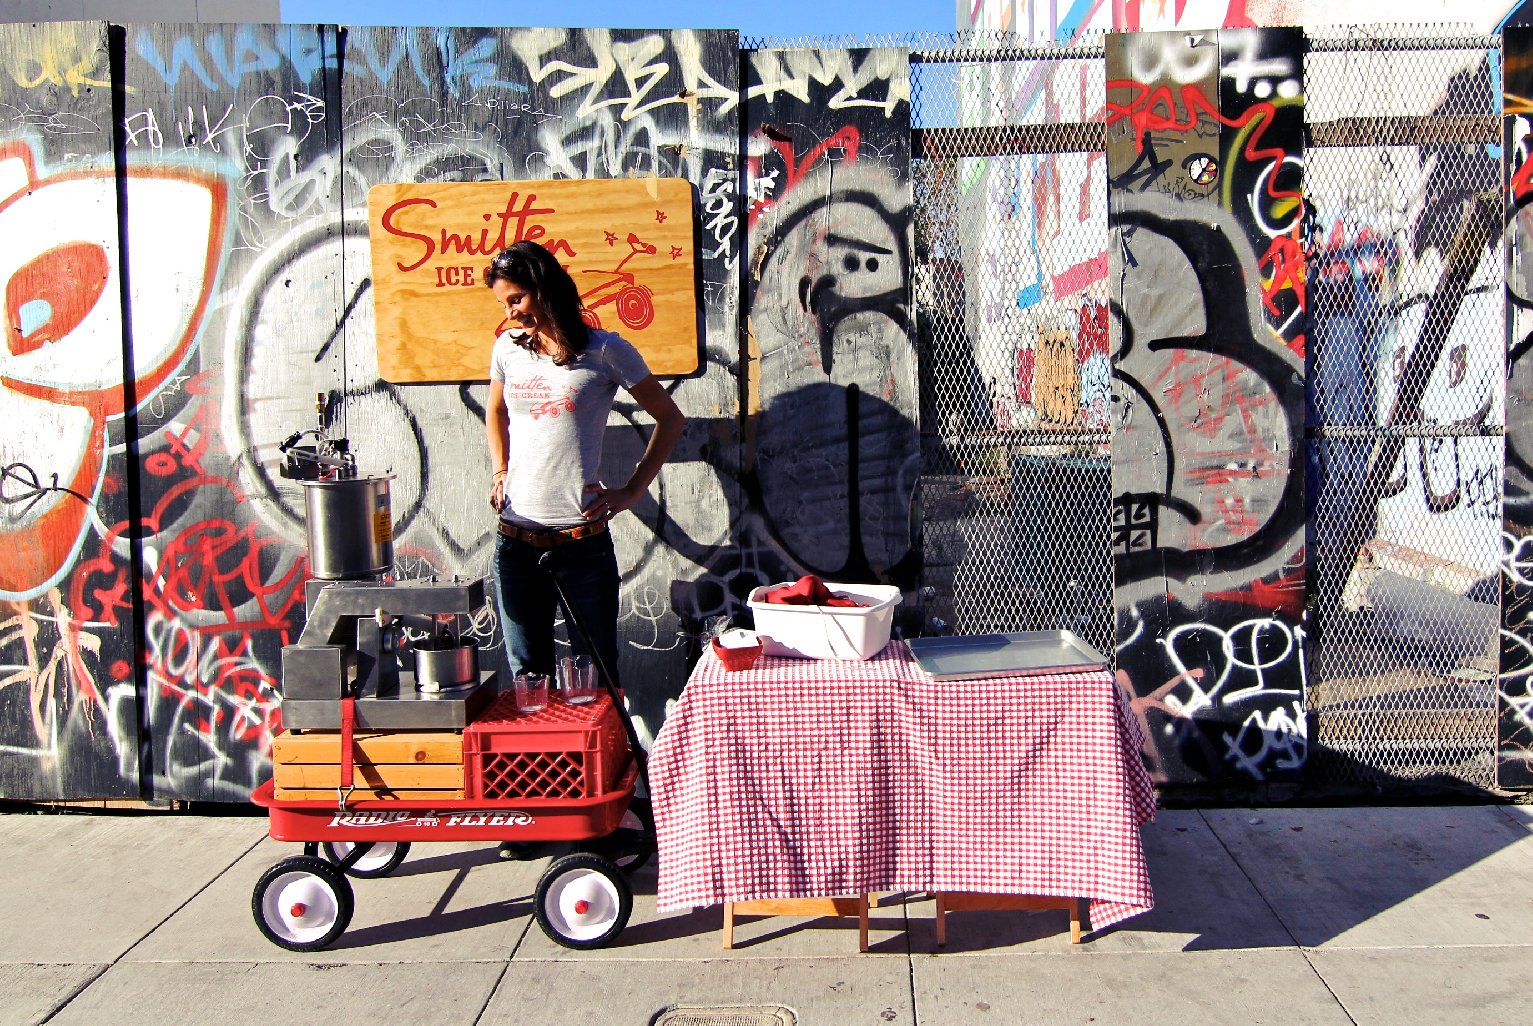 Robyn Sue Fisher and her red wagon. Photo: Courtesty of Smitten Ice Cream